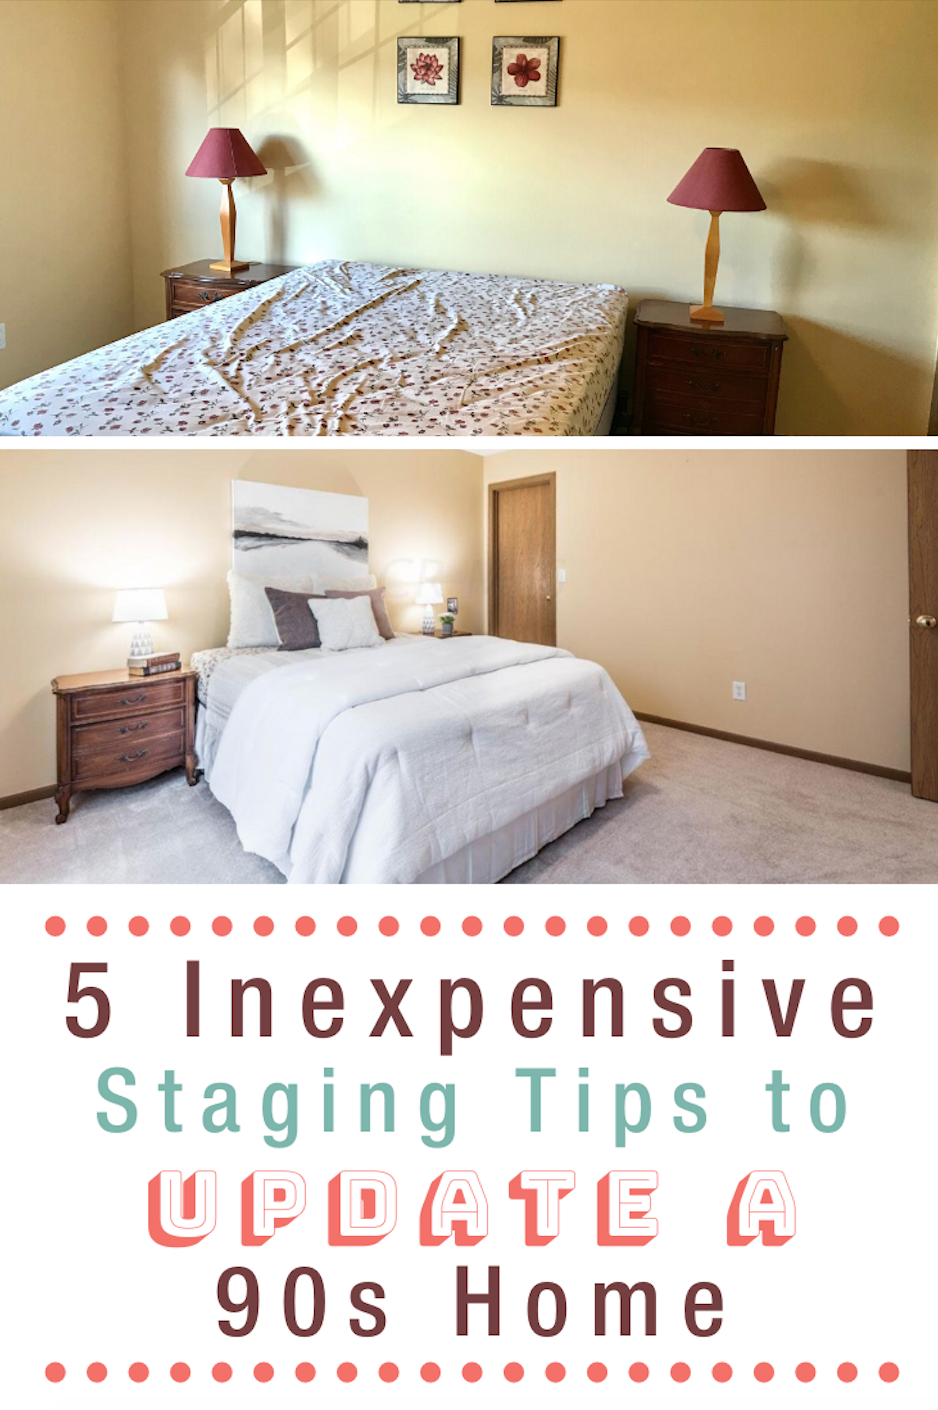 5_Inexpensive_Staging_Tips_to_Update_a_90s_Home